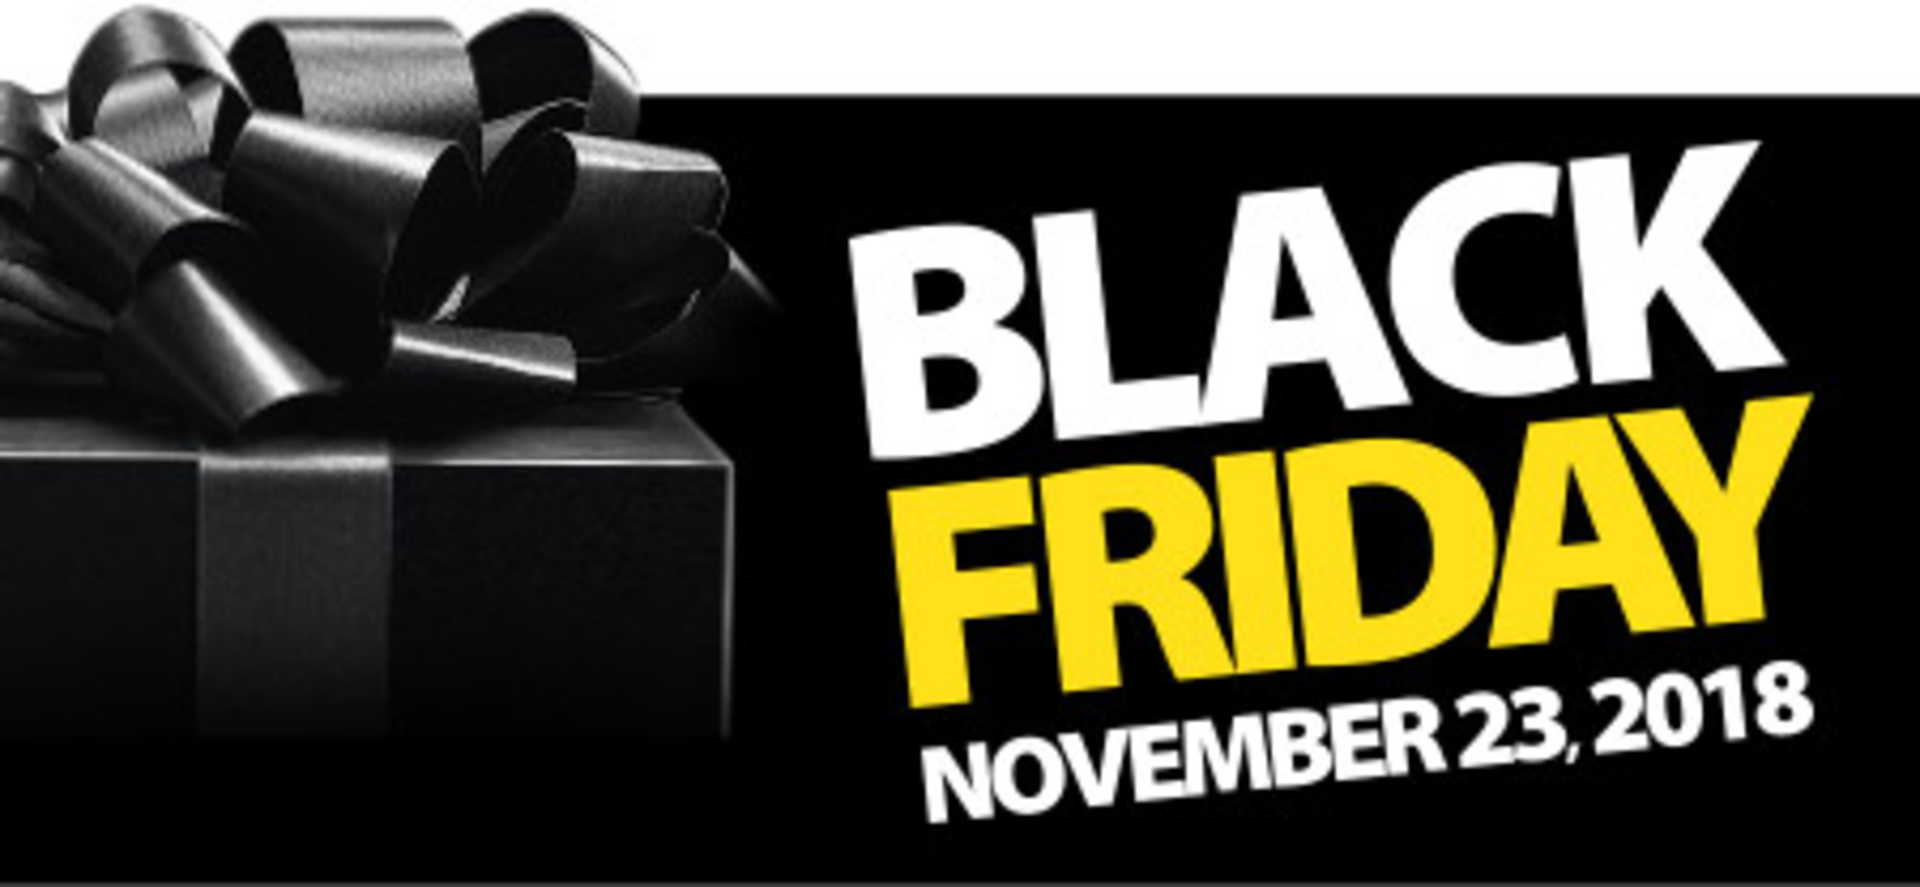 Get The Best Black Friday Camera Deals image